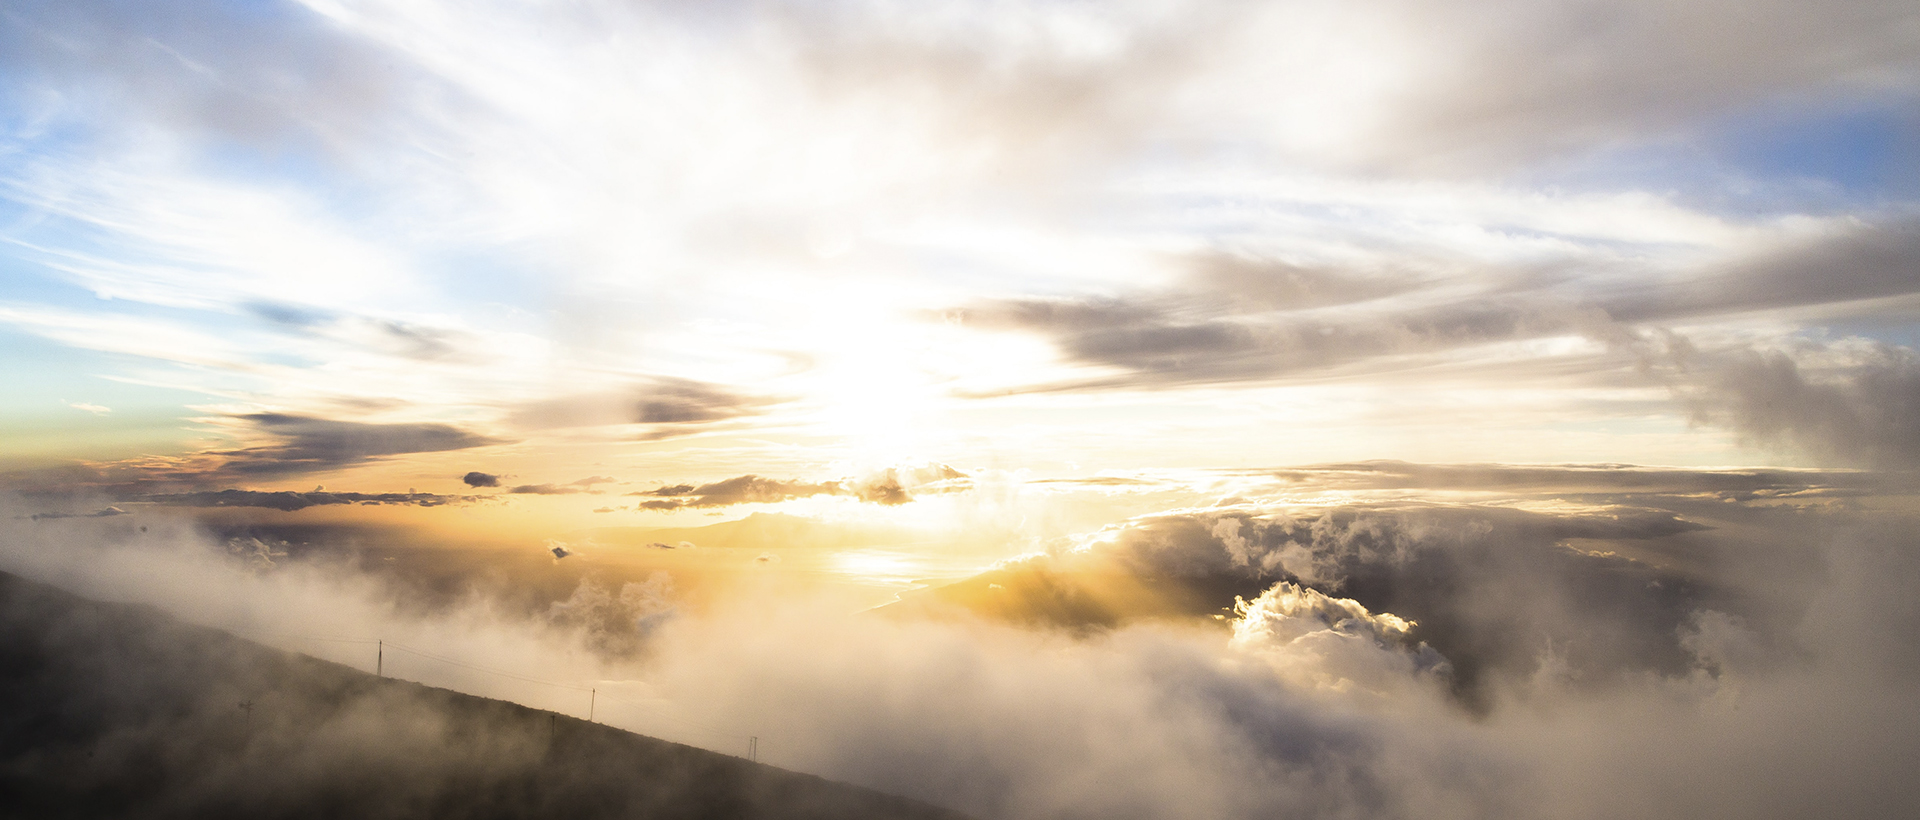 The Book of Revelation: Image of Christ's return - sunrise over clouds